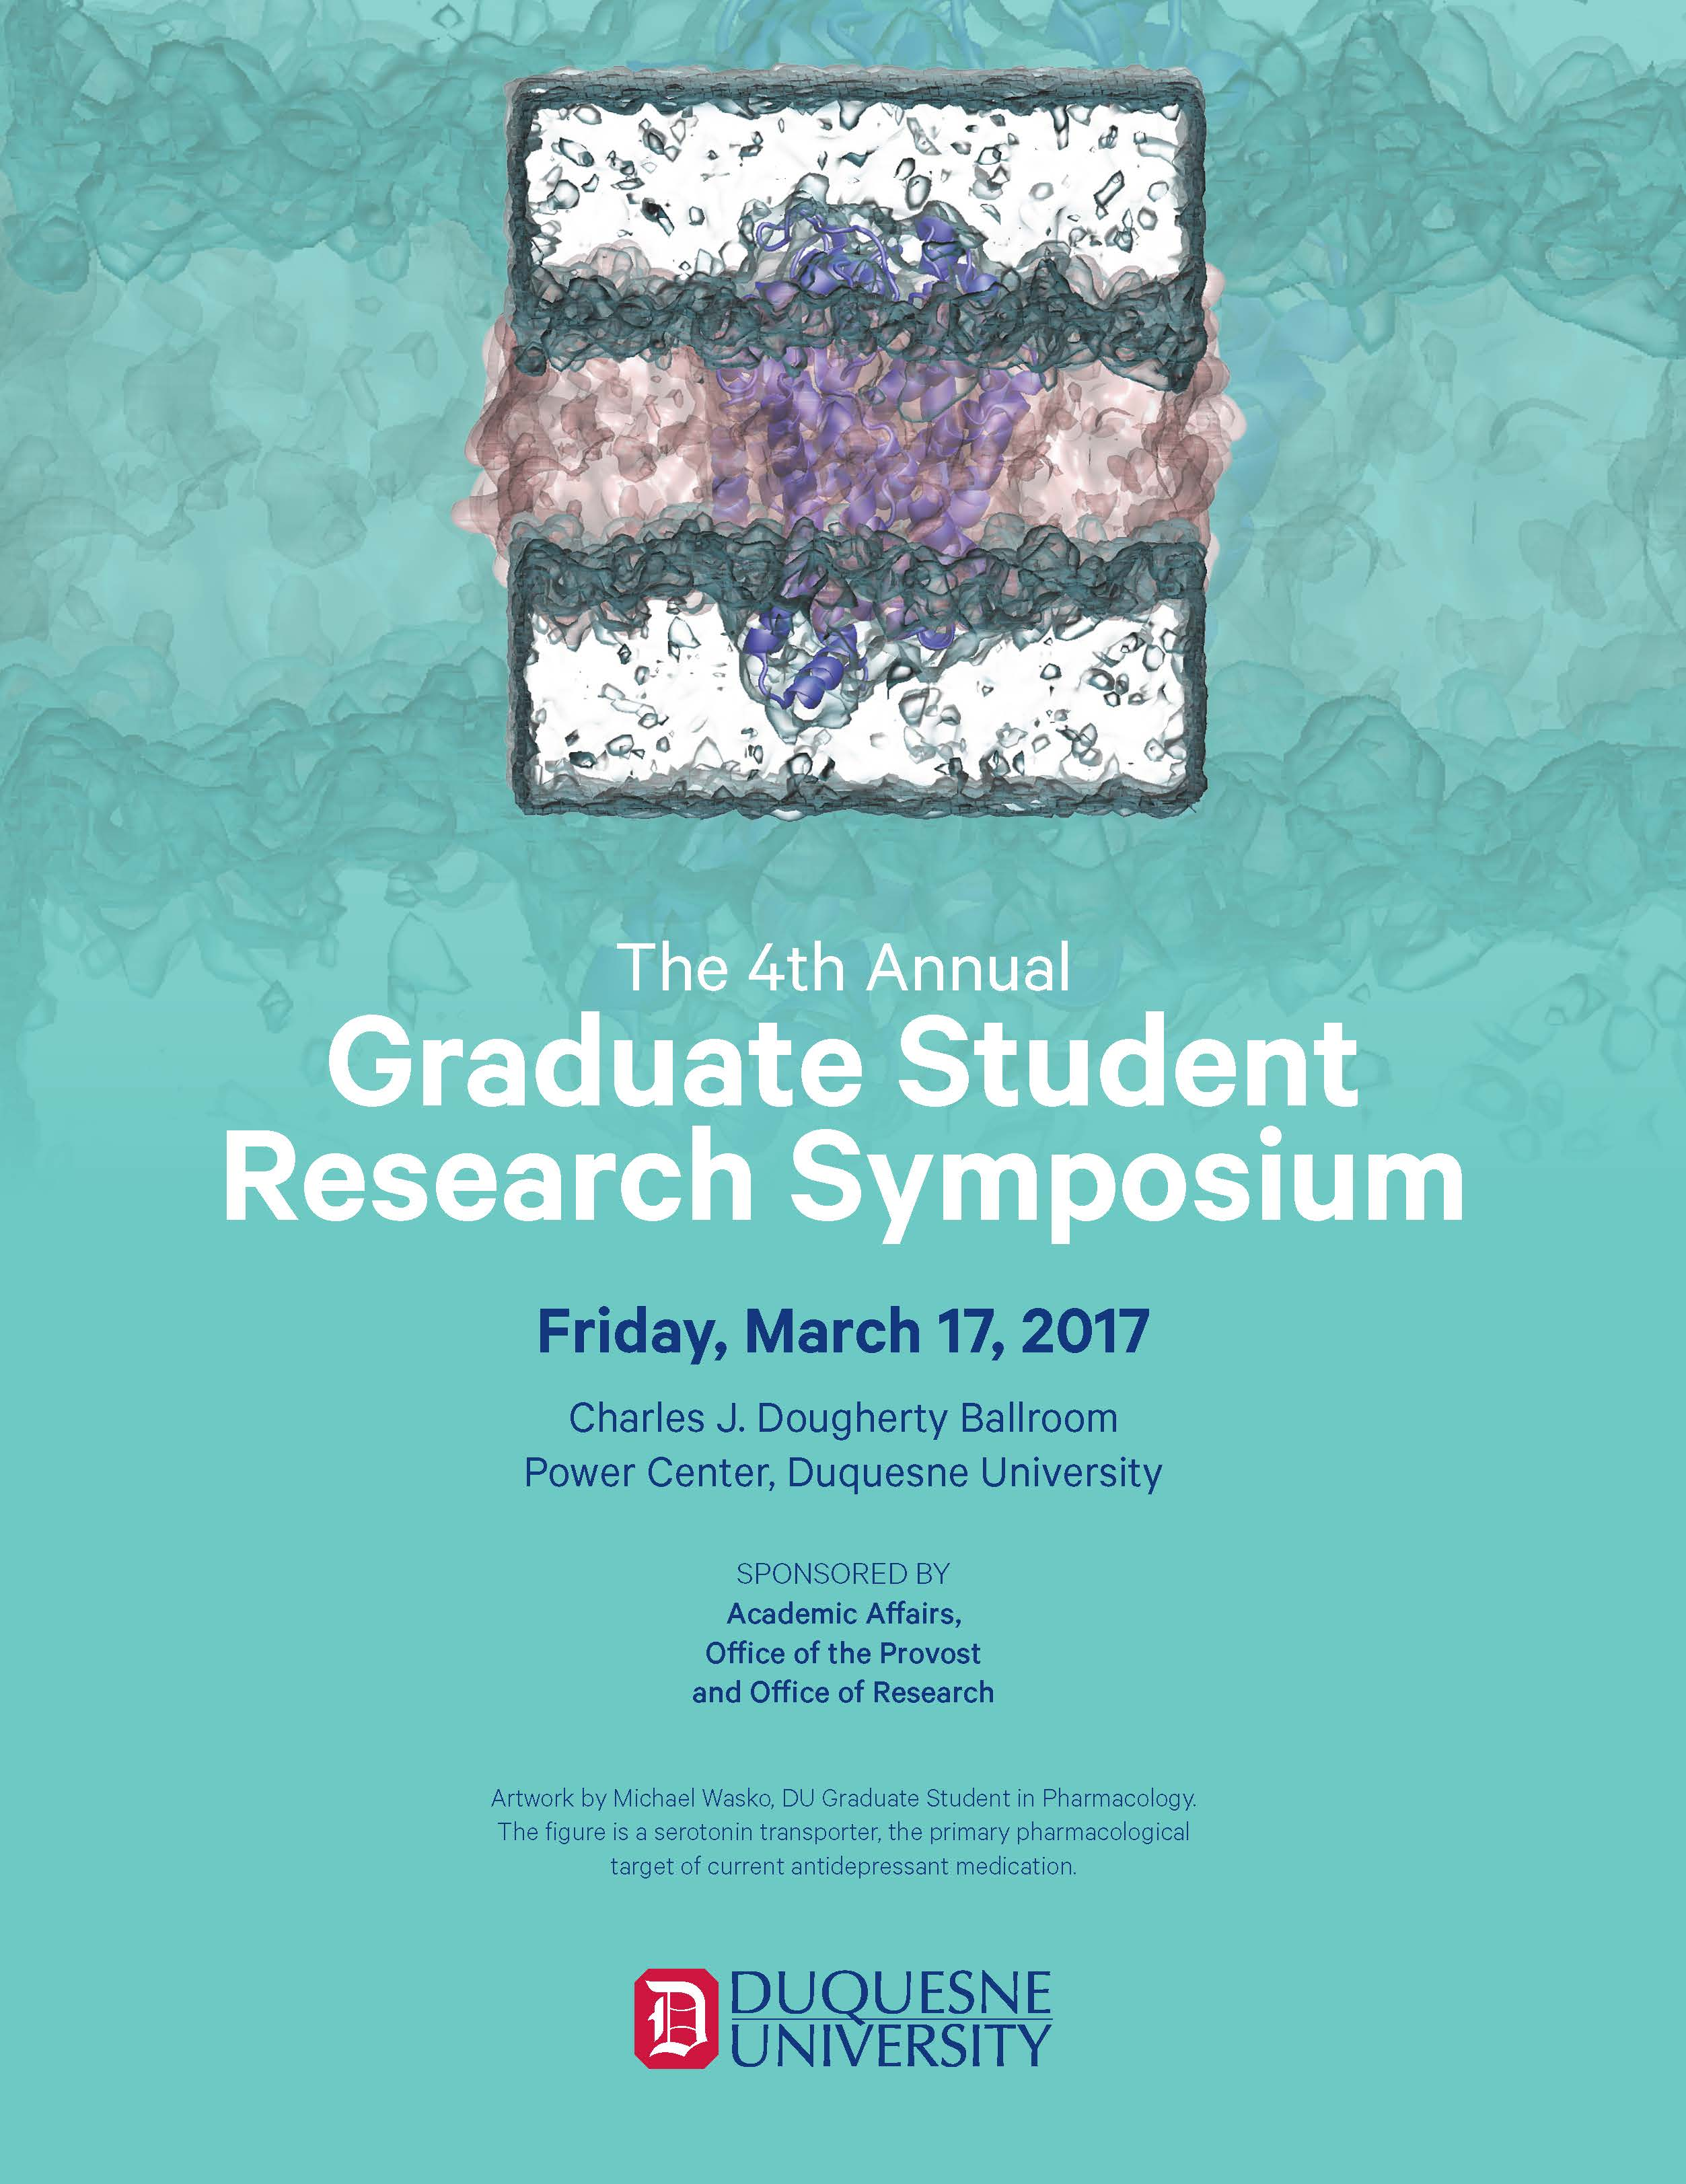 The 4th Annual Graduate Student Research Symposium